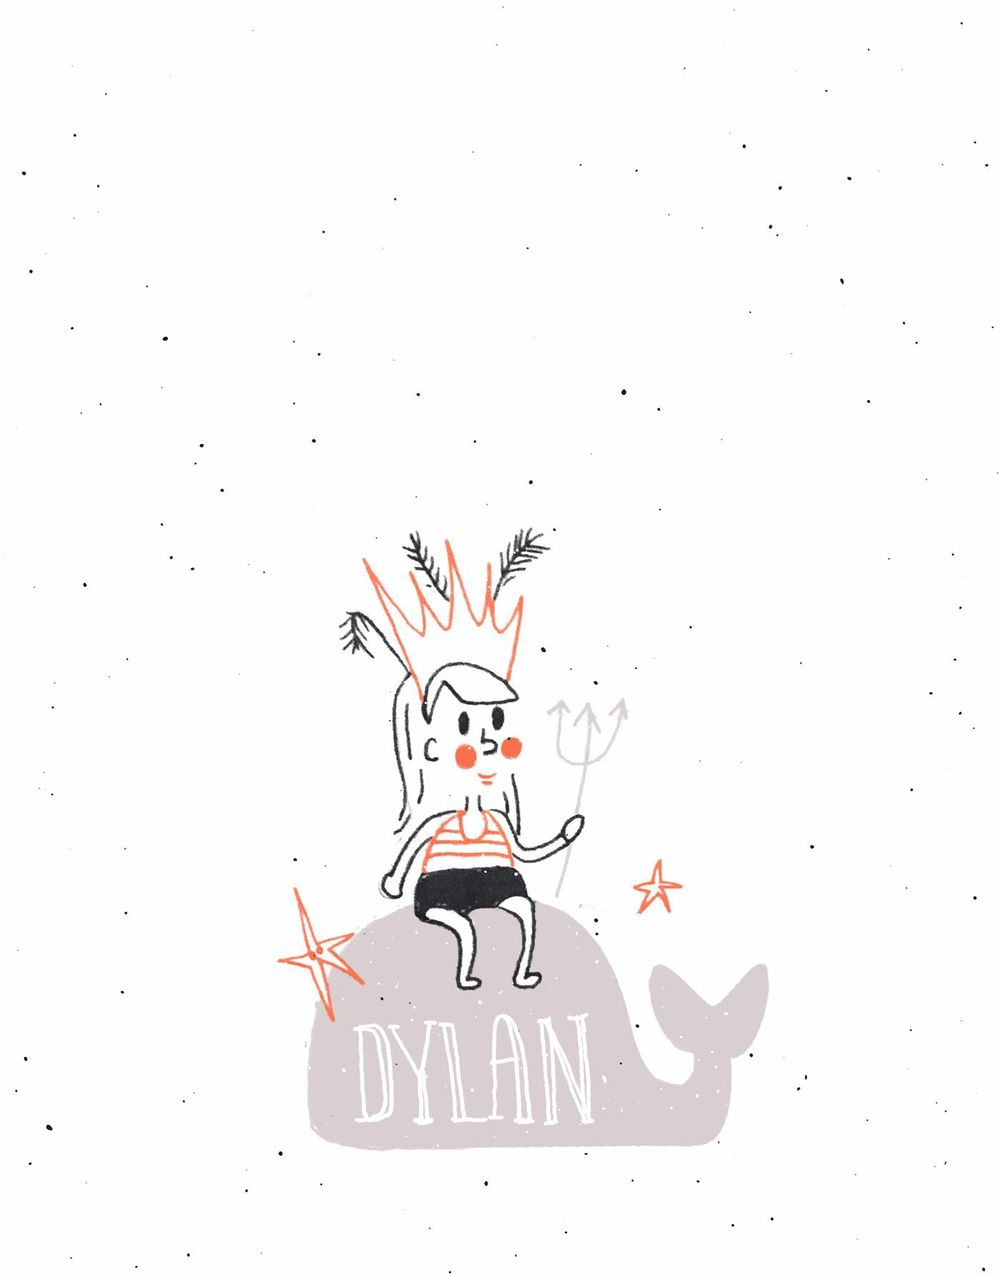 Dylan: God of the Sea! - image 4 - student project